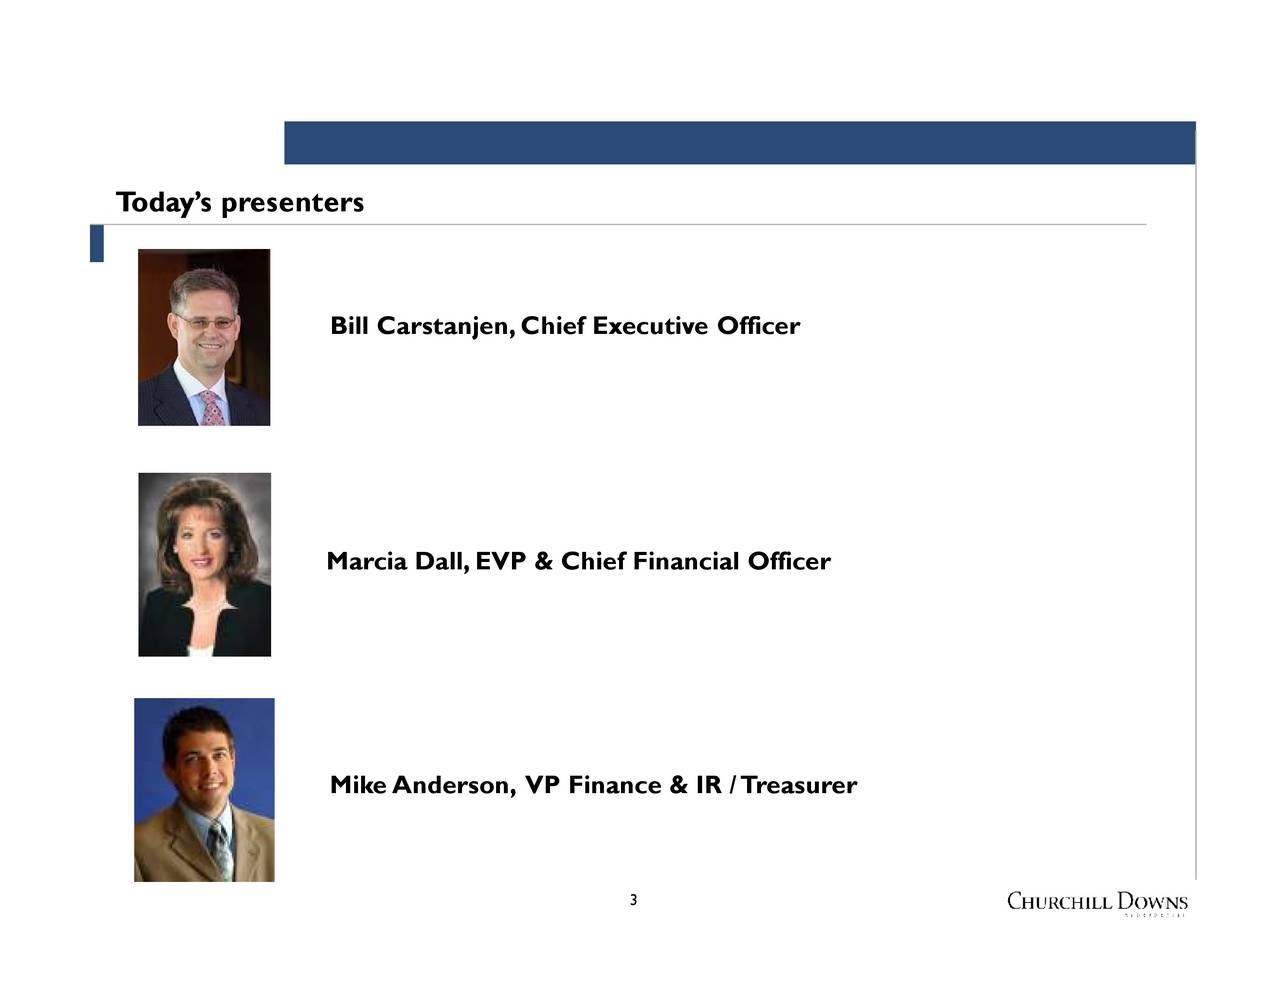 Bill Carstanjen,ChiefMarcia Dall, EVP & Chief Financial Officernce & IR /Treasurer Todays presenters